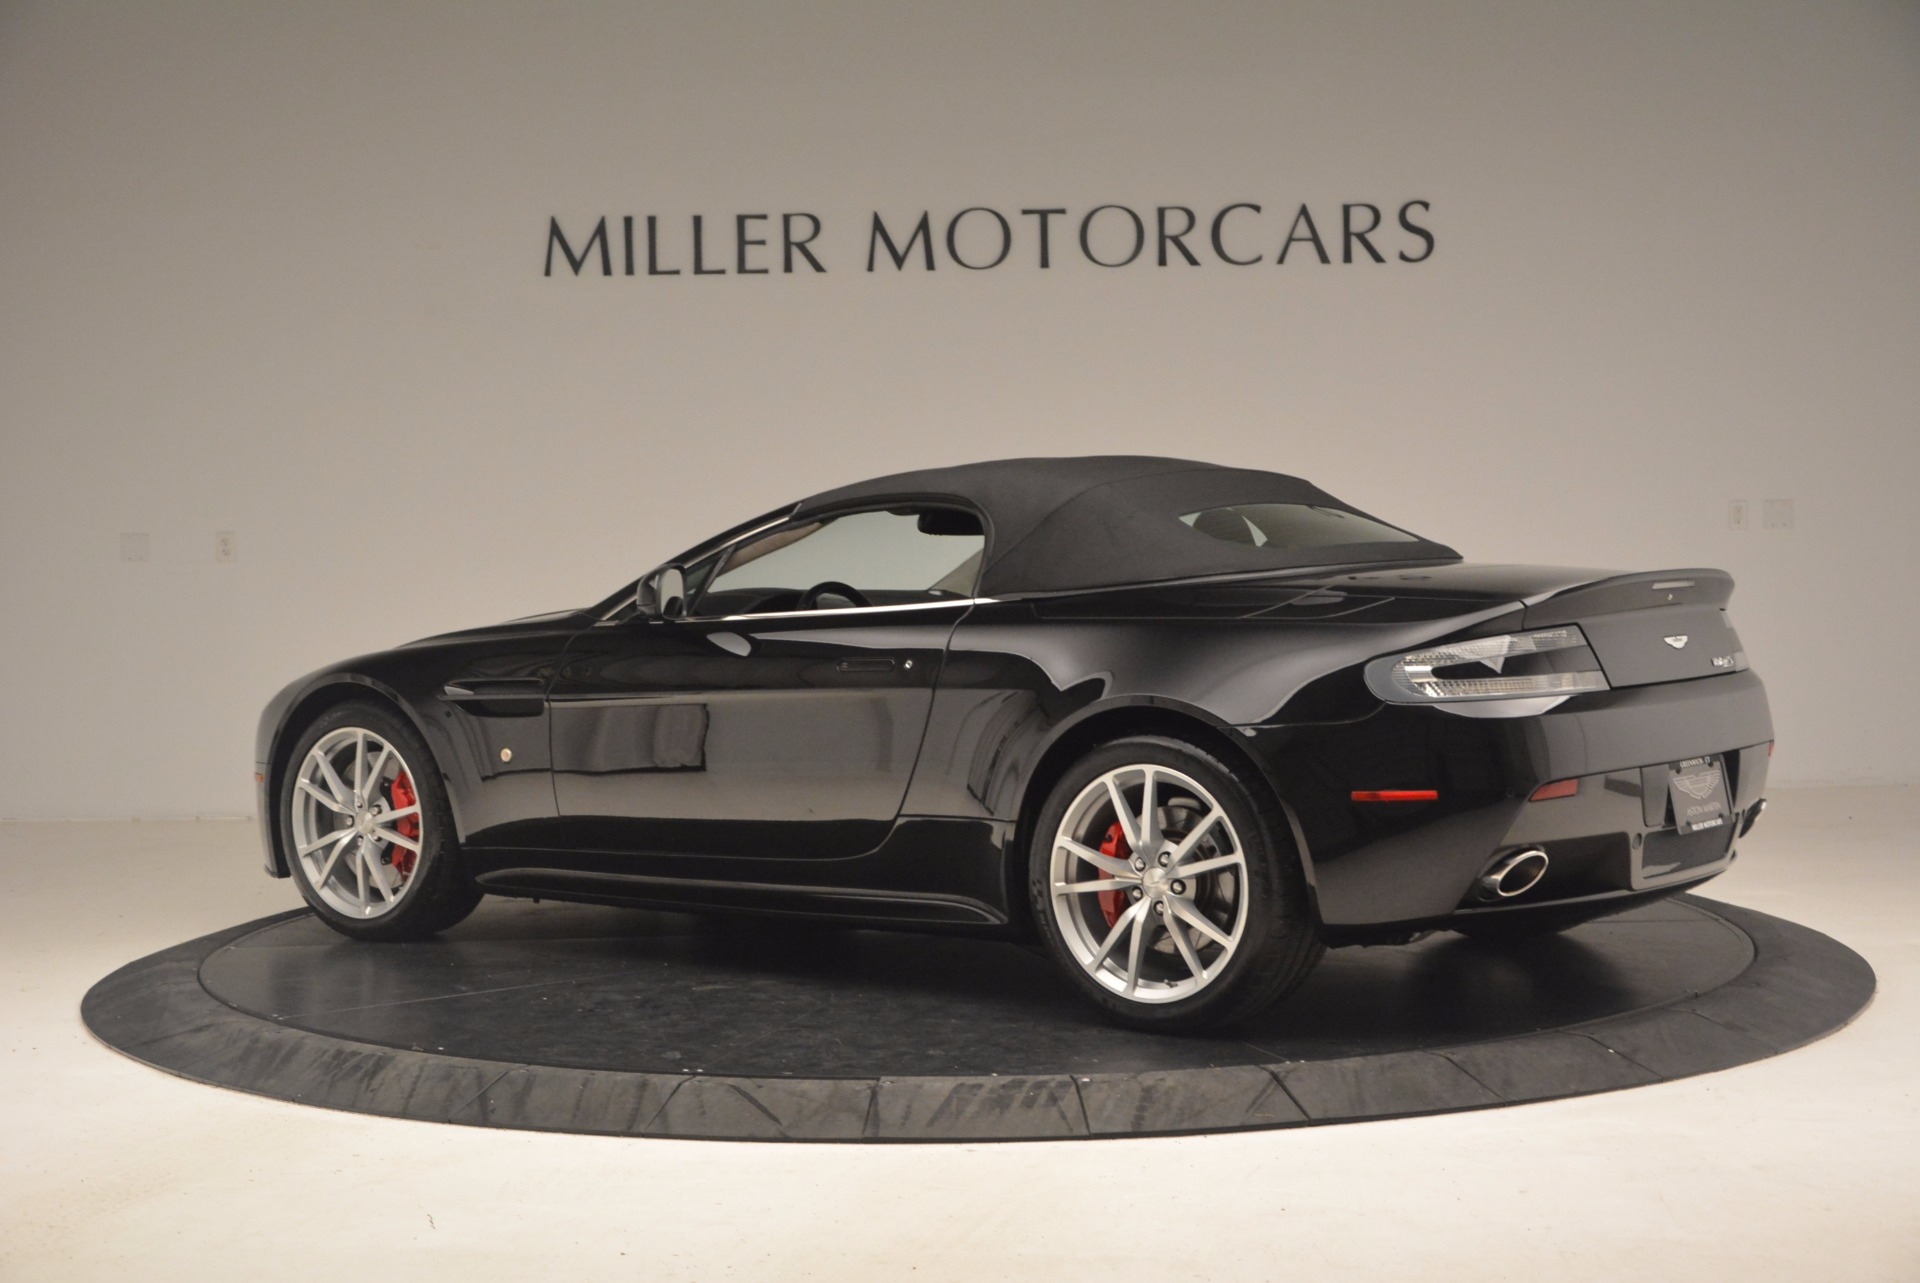 Used 2012 Aston Martin V8 Vantage S Roadster For Sale In Westport, CT 1181_p16